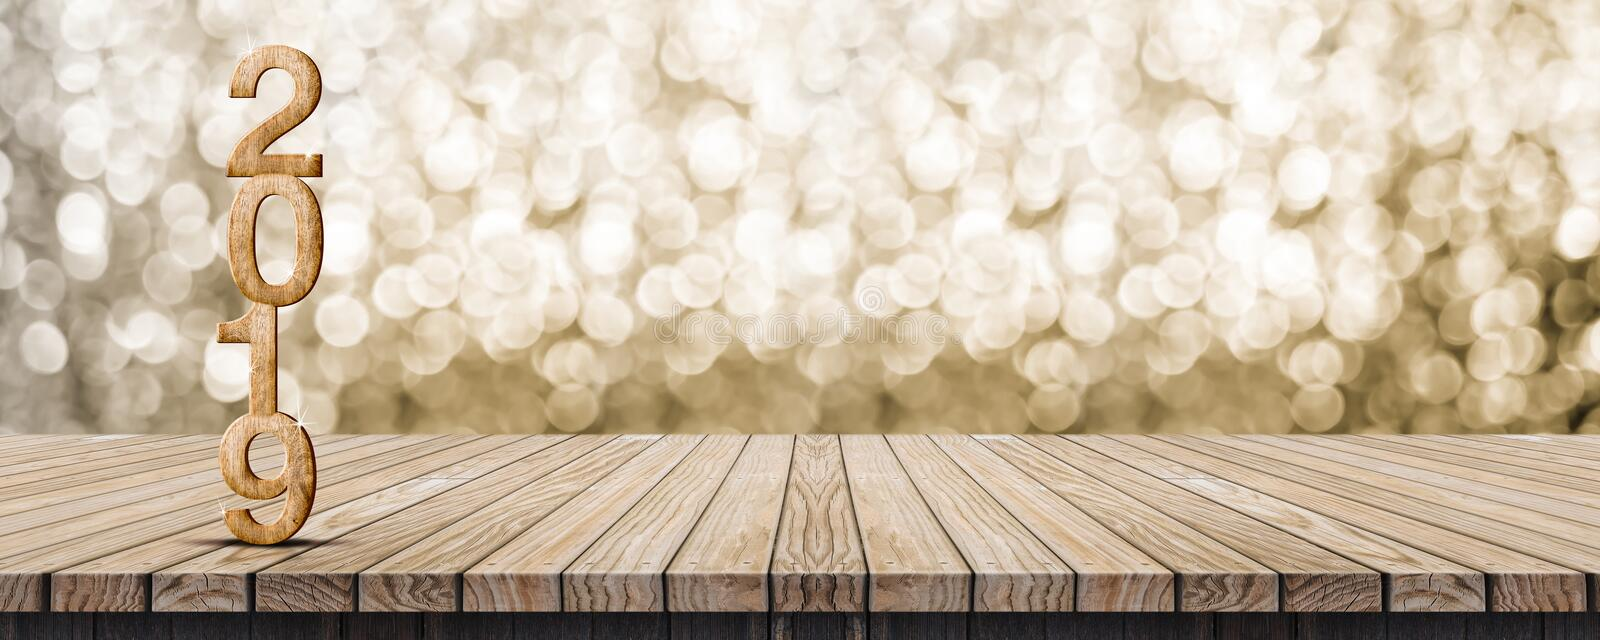 2019 happy new year wood number 3d rendering on wood table wit royalty free stock photography